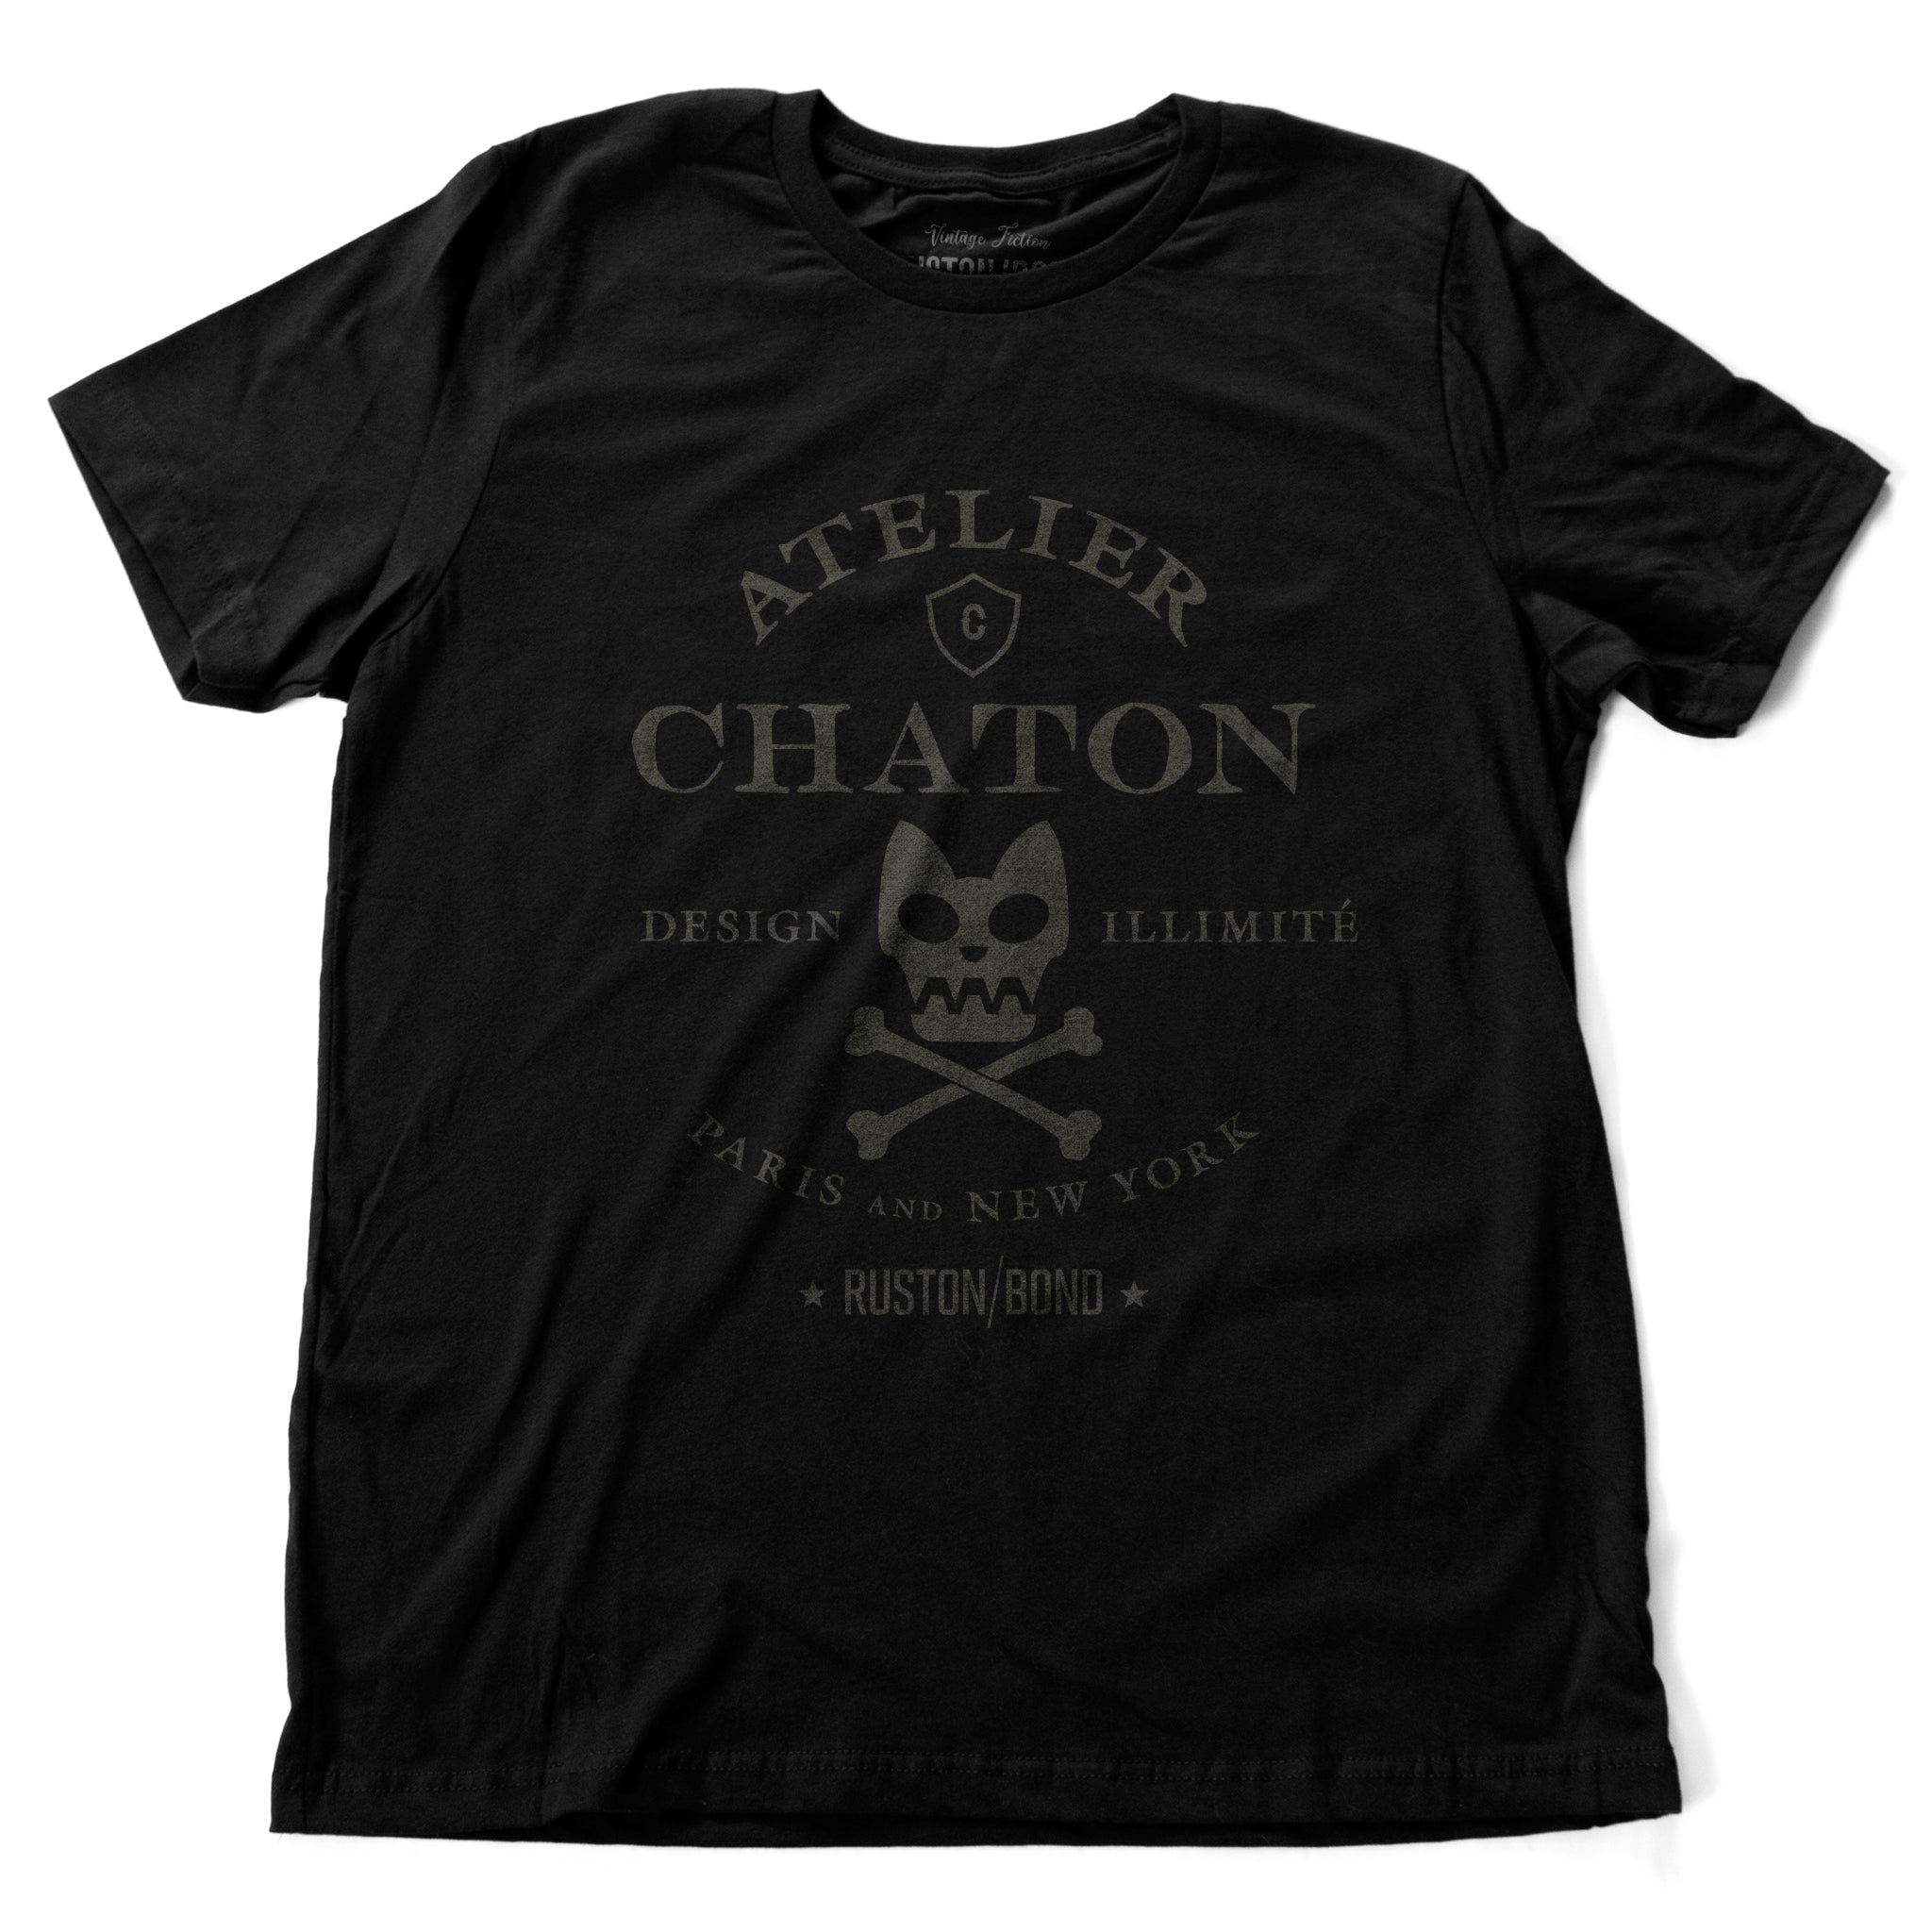 Black retro, vintage-inspired fashion t-shirt for a fictional graphic design studio in Paris and New York, featuring a graphic of a cat skull and cross bones, from brand Ruston/Bond